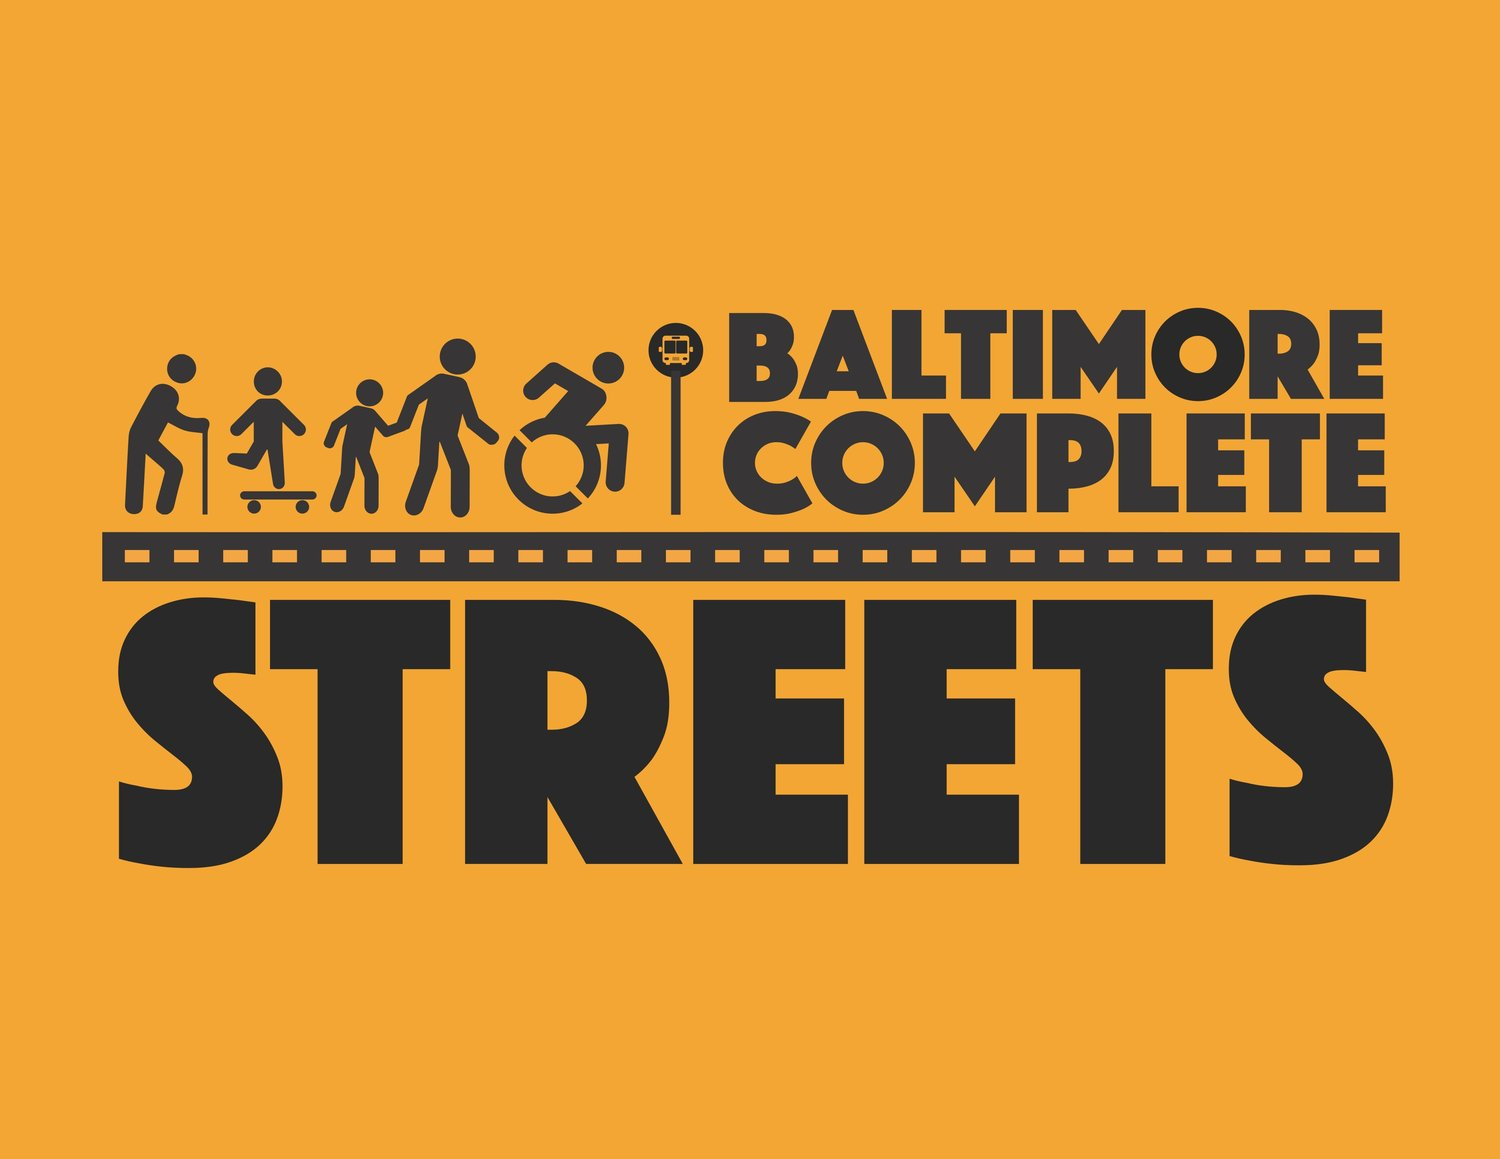 Baltimore Complete Streets